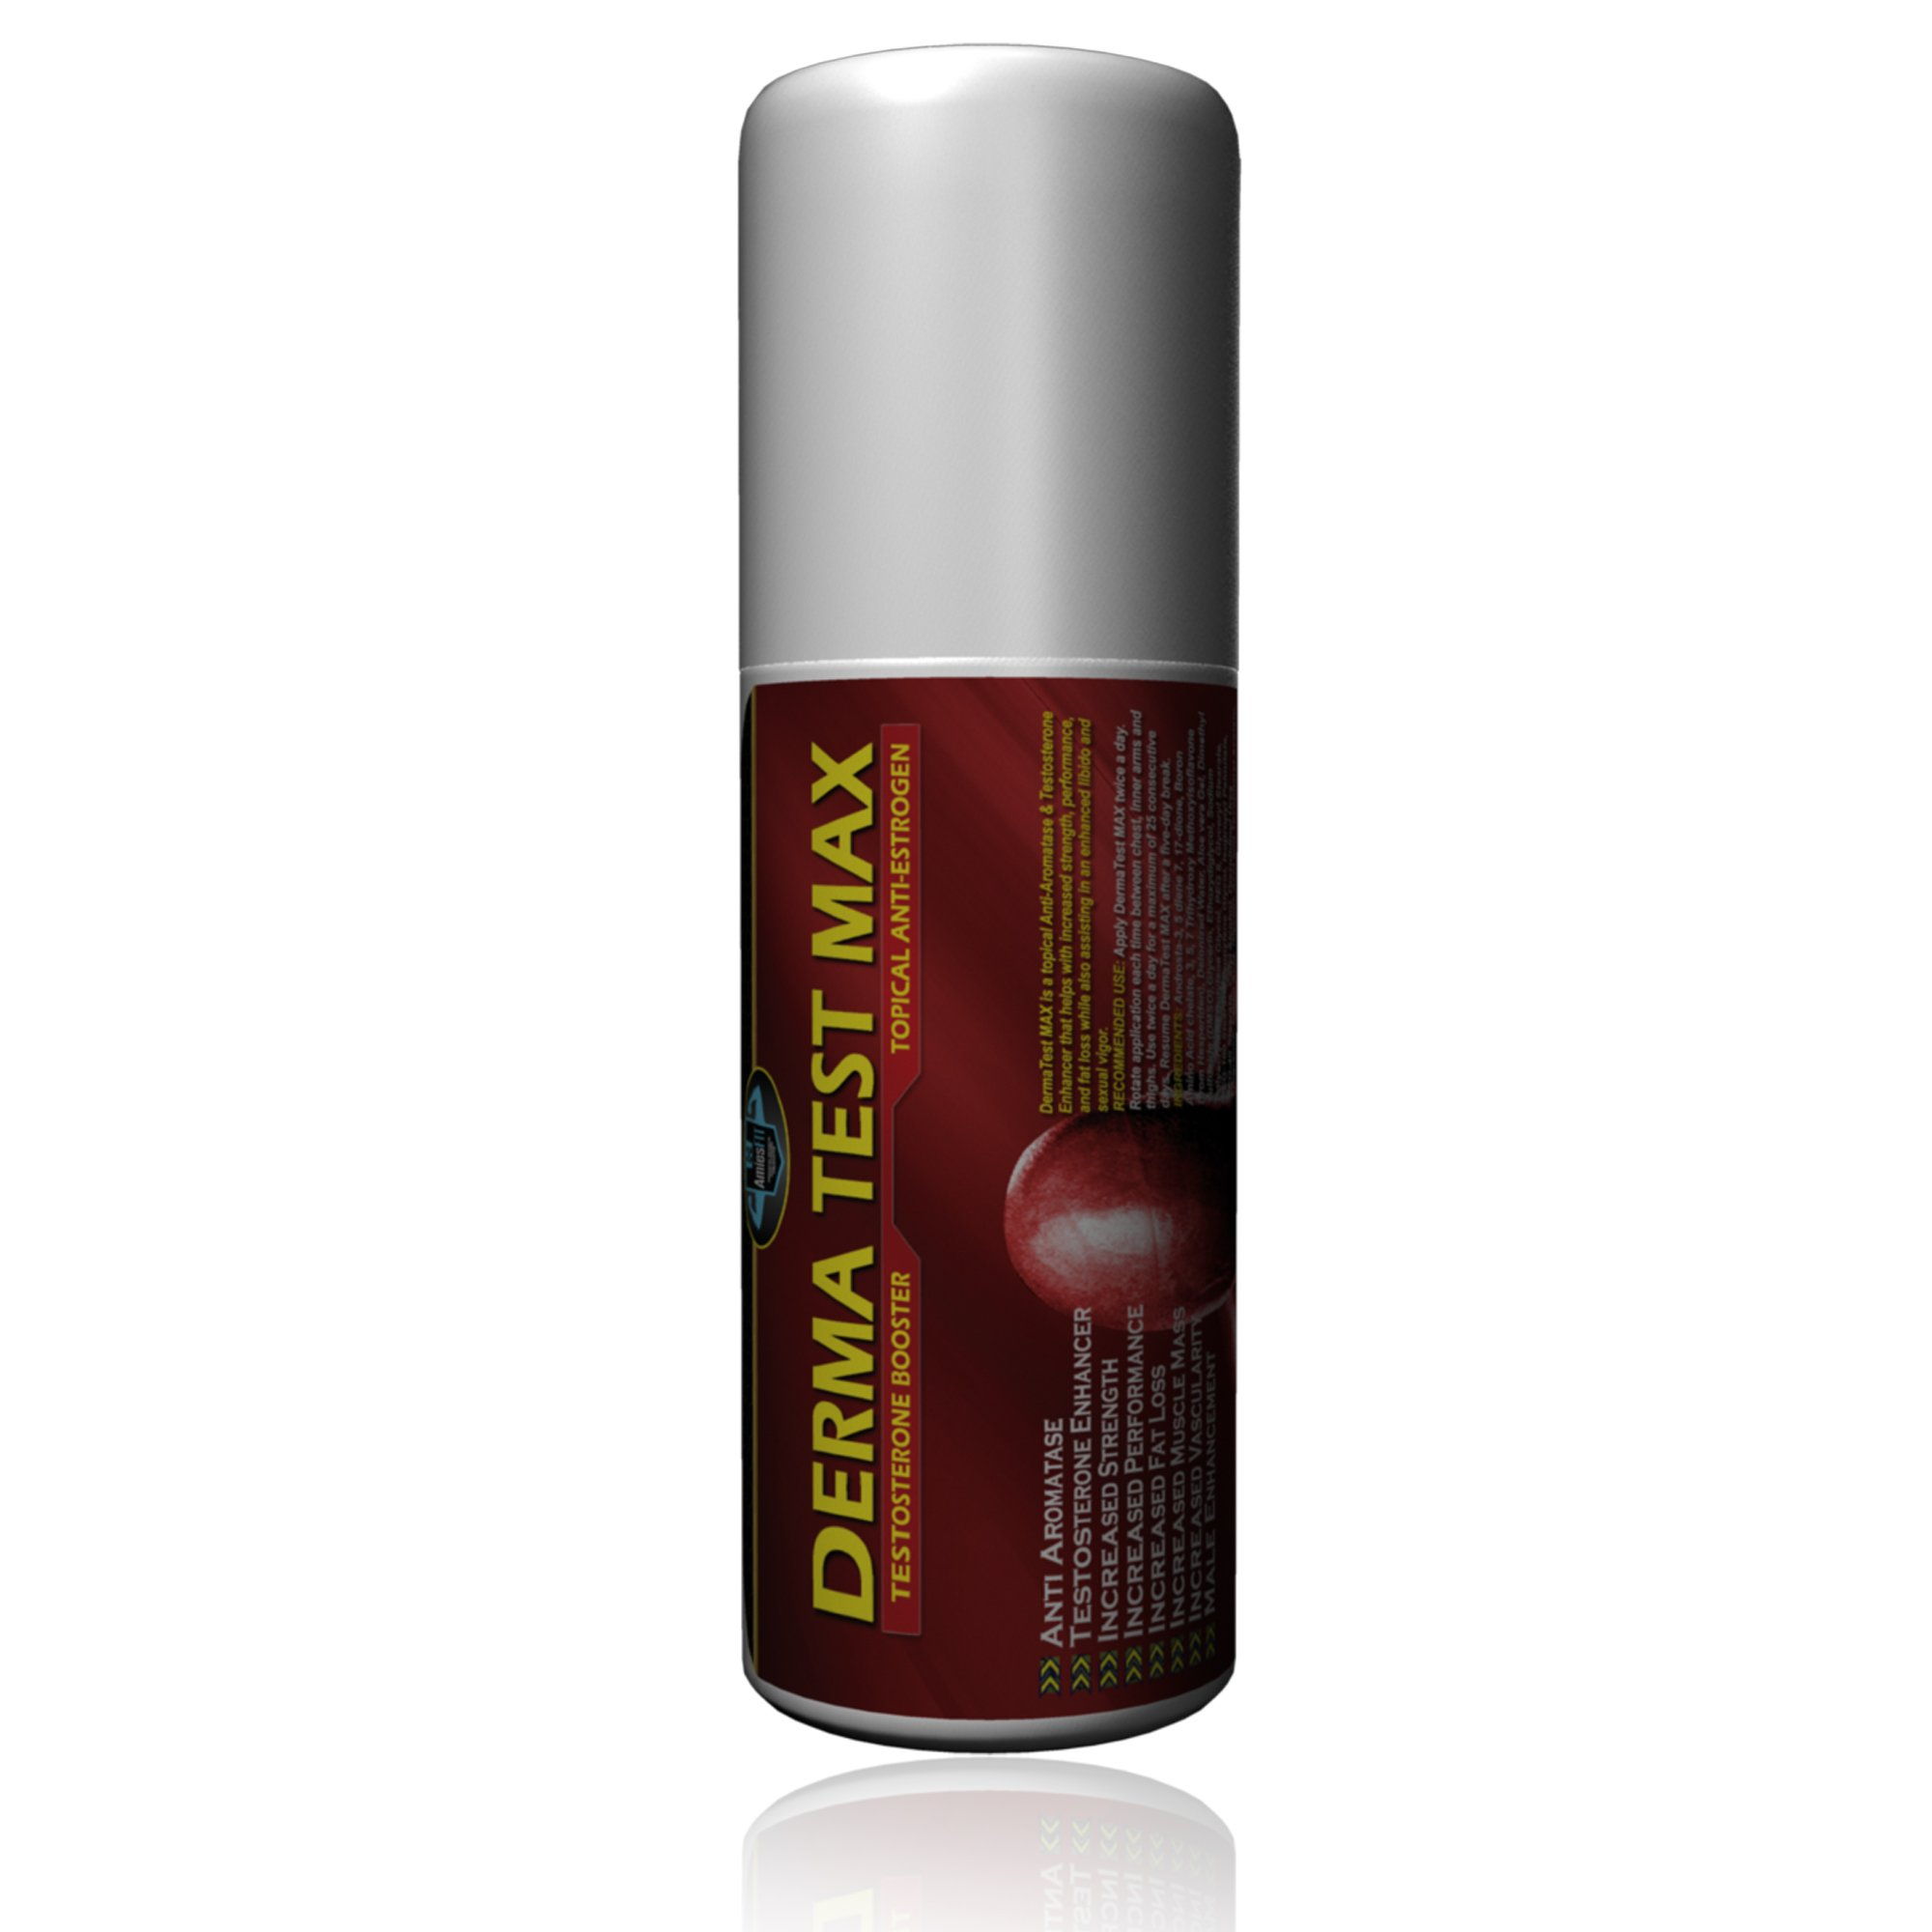 DermaTEST Max (BOGO) - Roll On Anti-Estrogen, Aromatase Inhibitor - (2 Cycles in 1 Bottle) Lean, Hard, Dry - DHEA, LOW T, Libido & Testosterone Booster, Alpha Male, Fast Acting, SAFE to use - 3.5oz